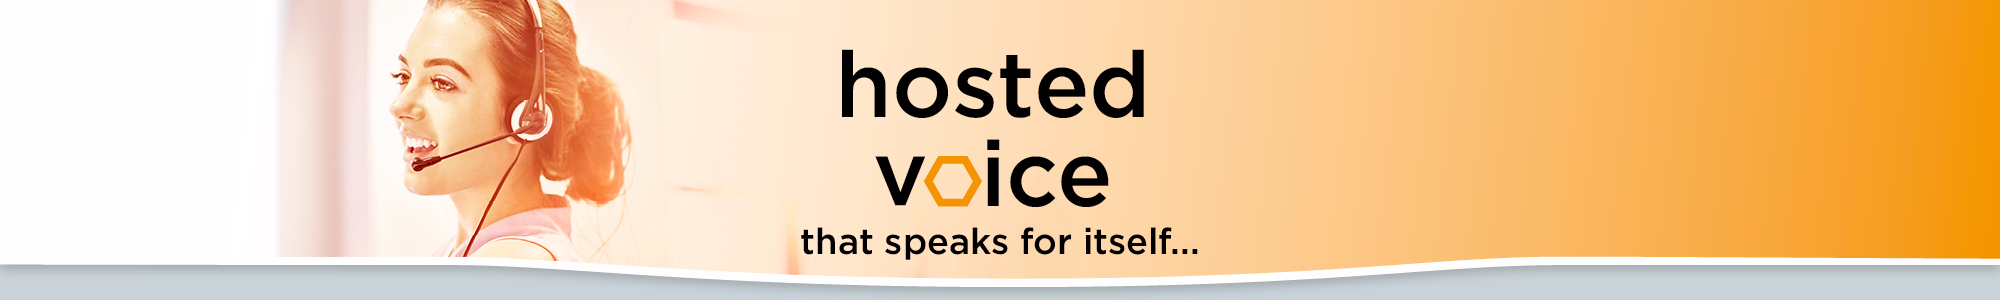 Hosted Voice - Managed VoIP for Business and IP Telephony -